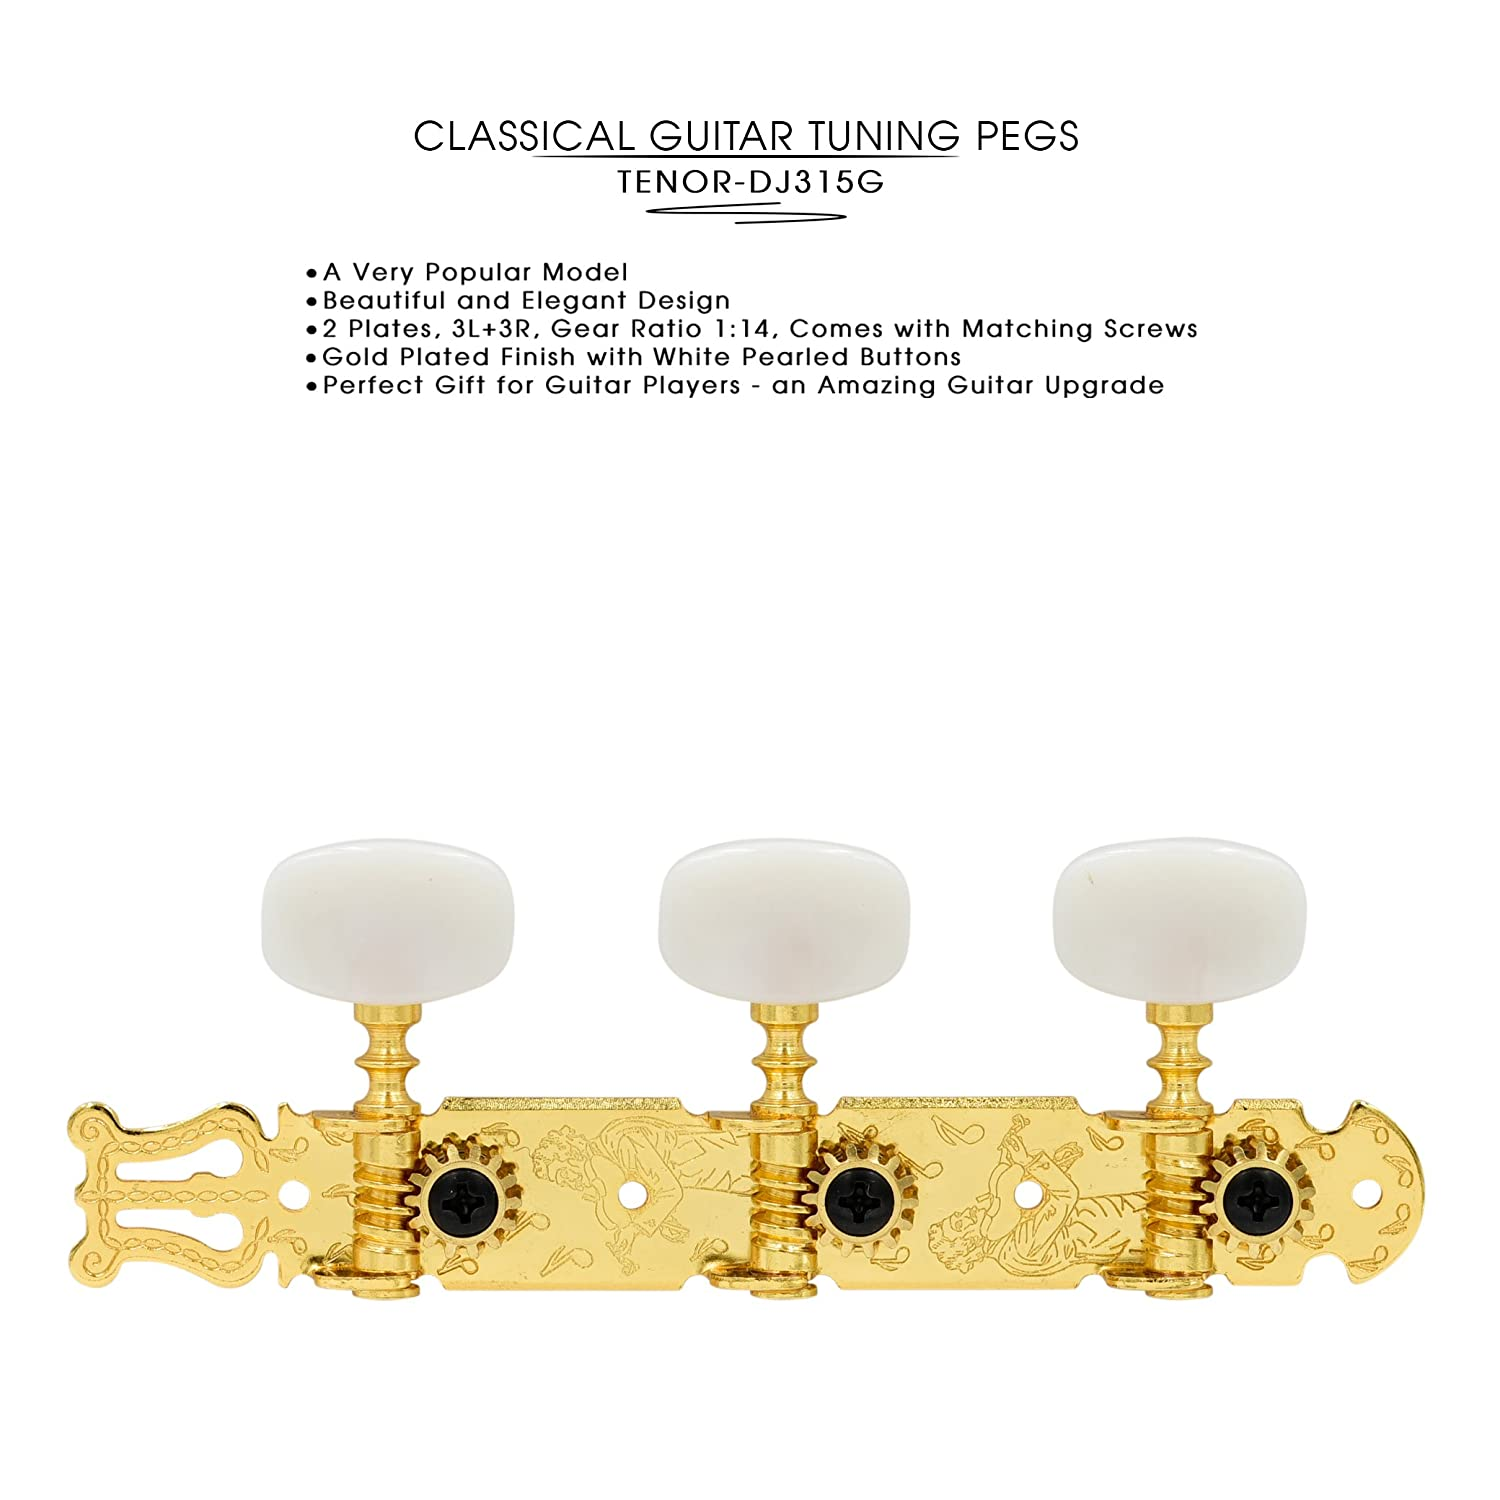 DJ310NK-A1B TENOR Classical Guitar Tuners, Tuning Key Pegs/Machine Heads for Classical or Flamenco Guitar with Nickel Finish and Ebony Colored Buttons. TENOR-DJ310NK-A1B